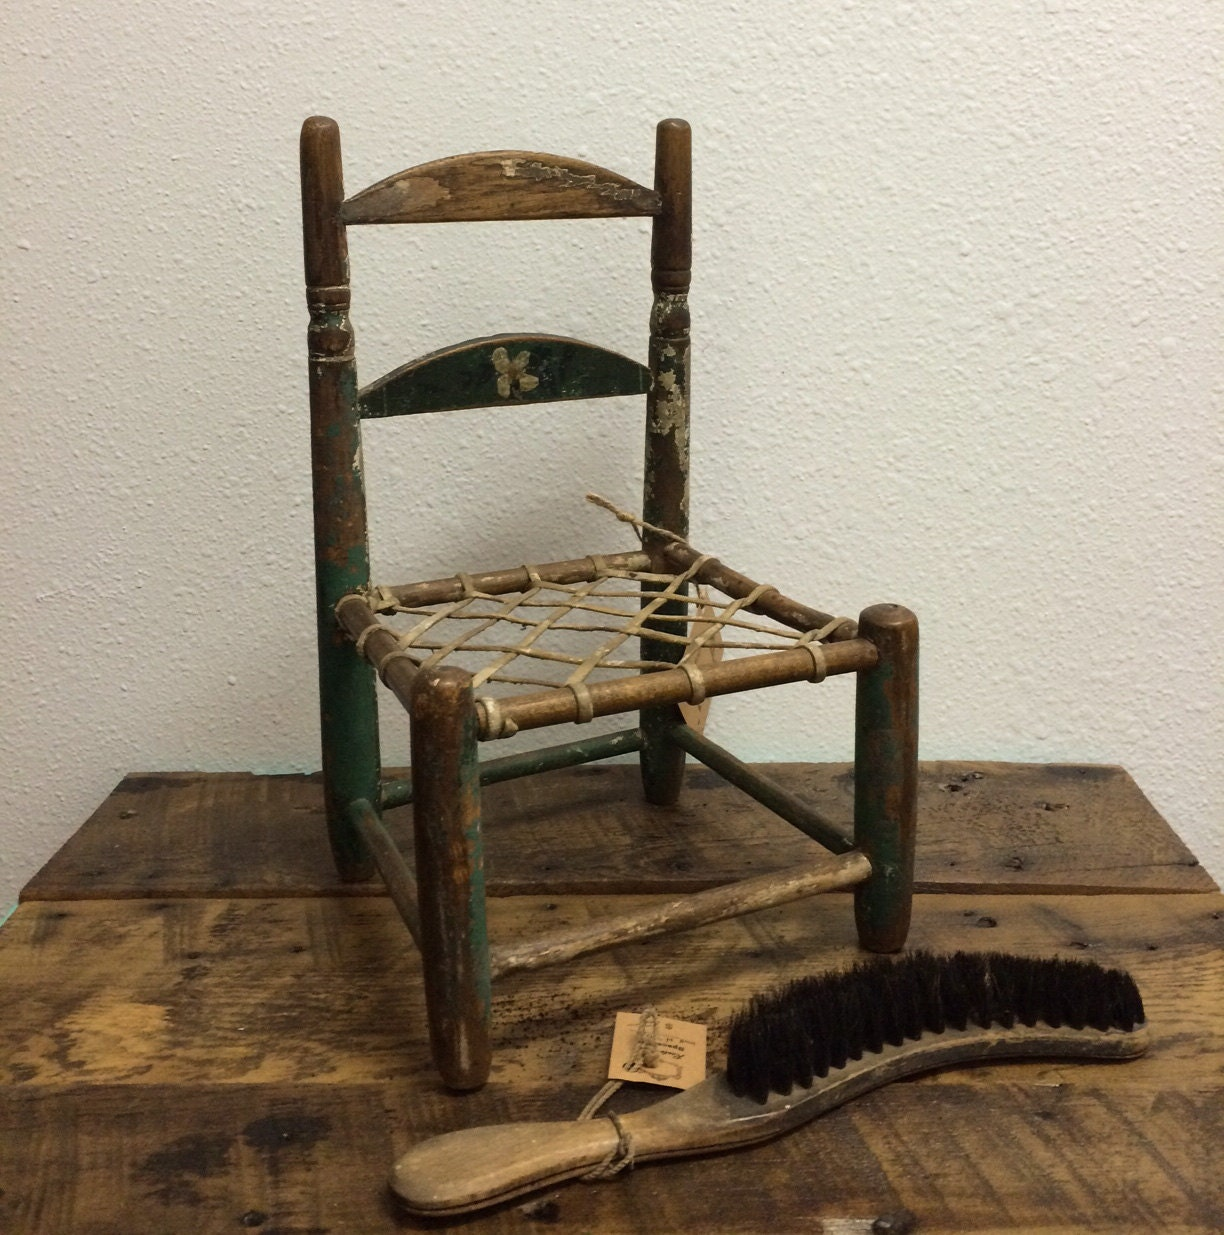 Vintage Doll Chair wooden with woven leather strap seat ...